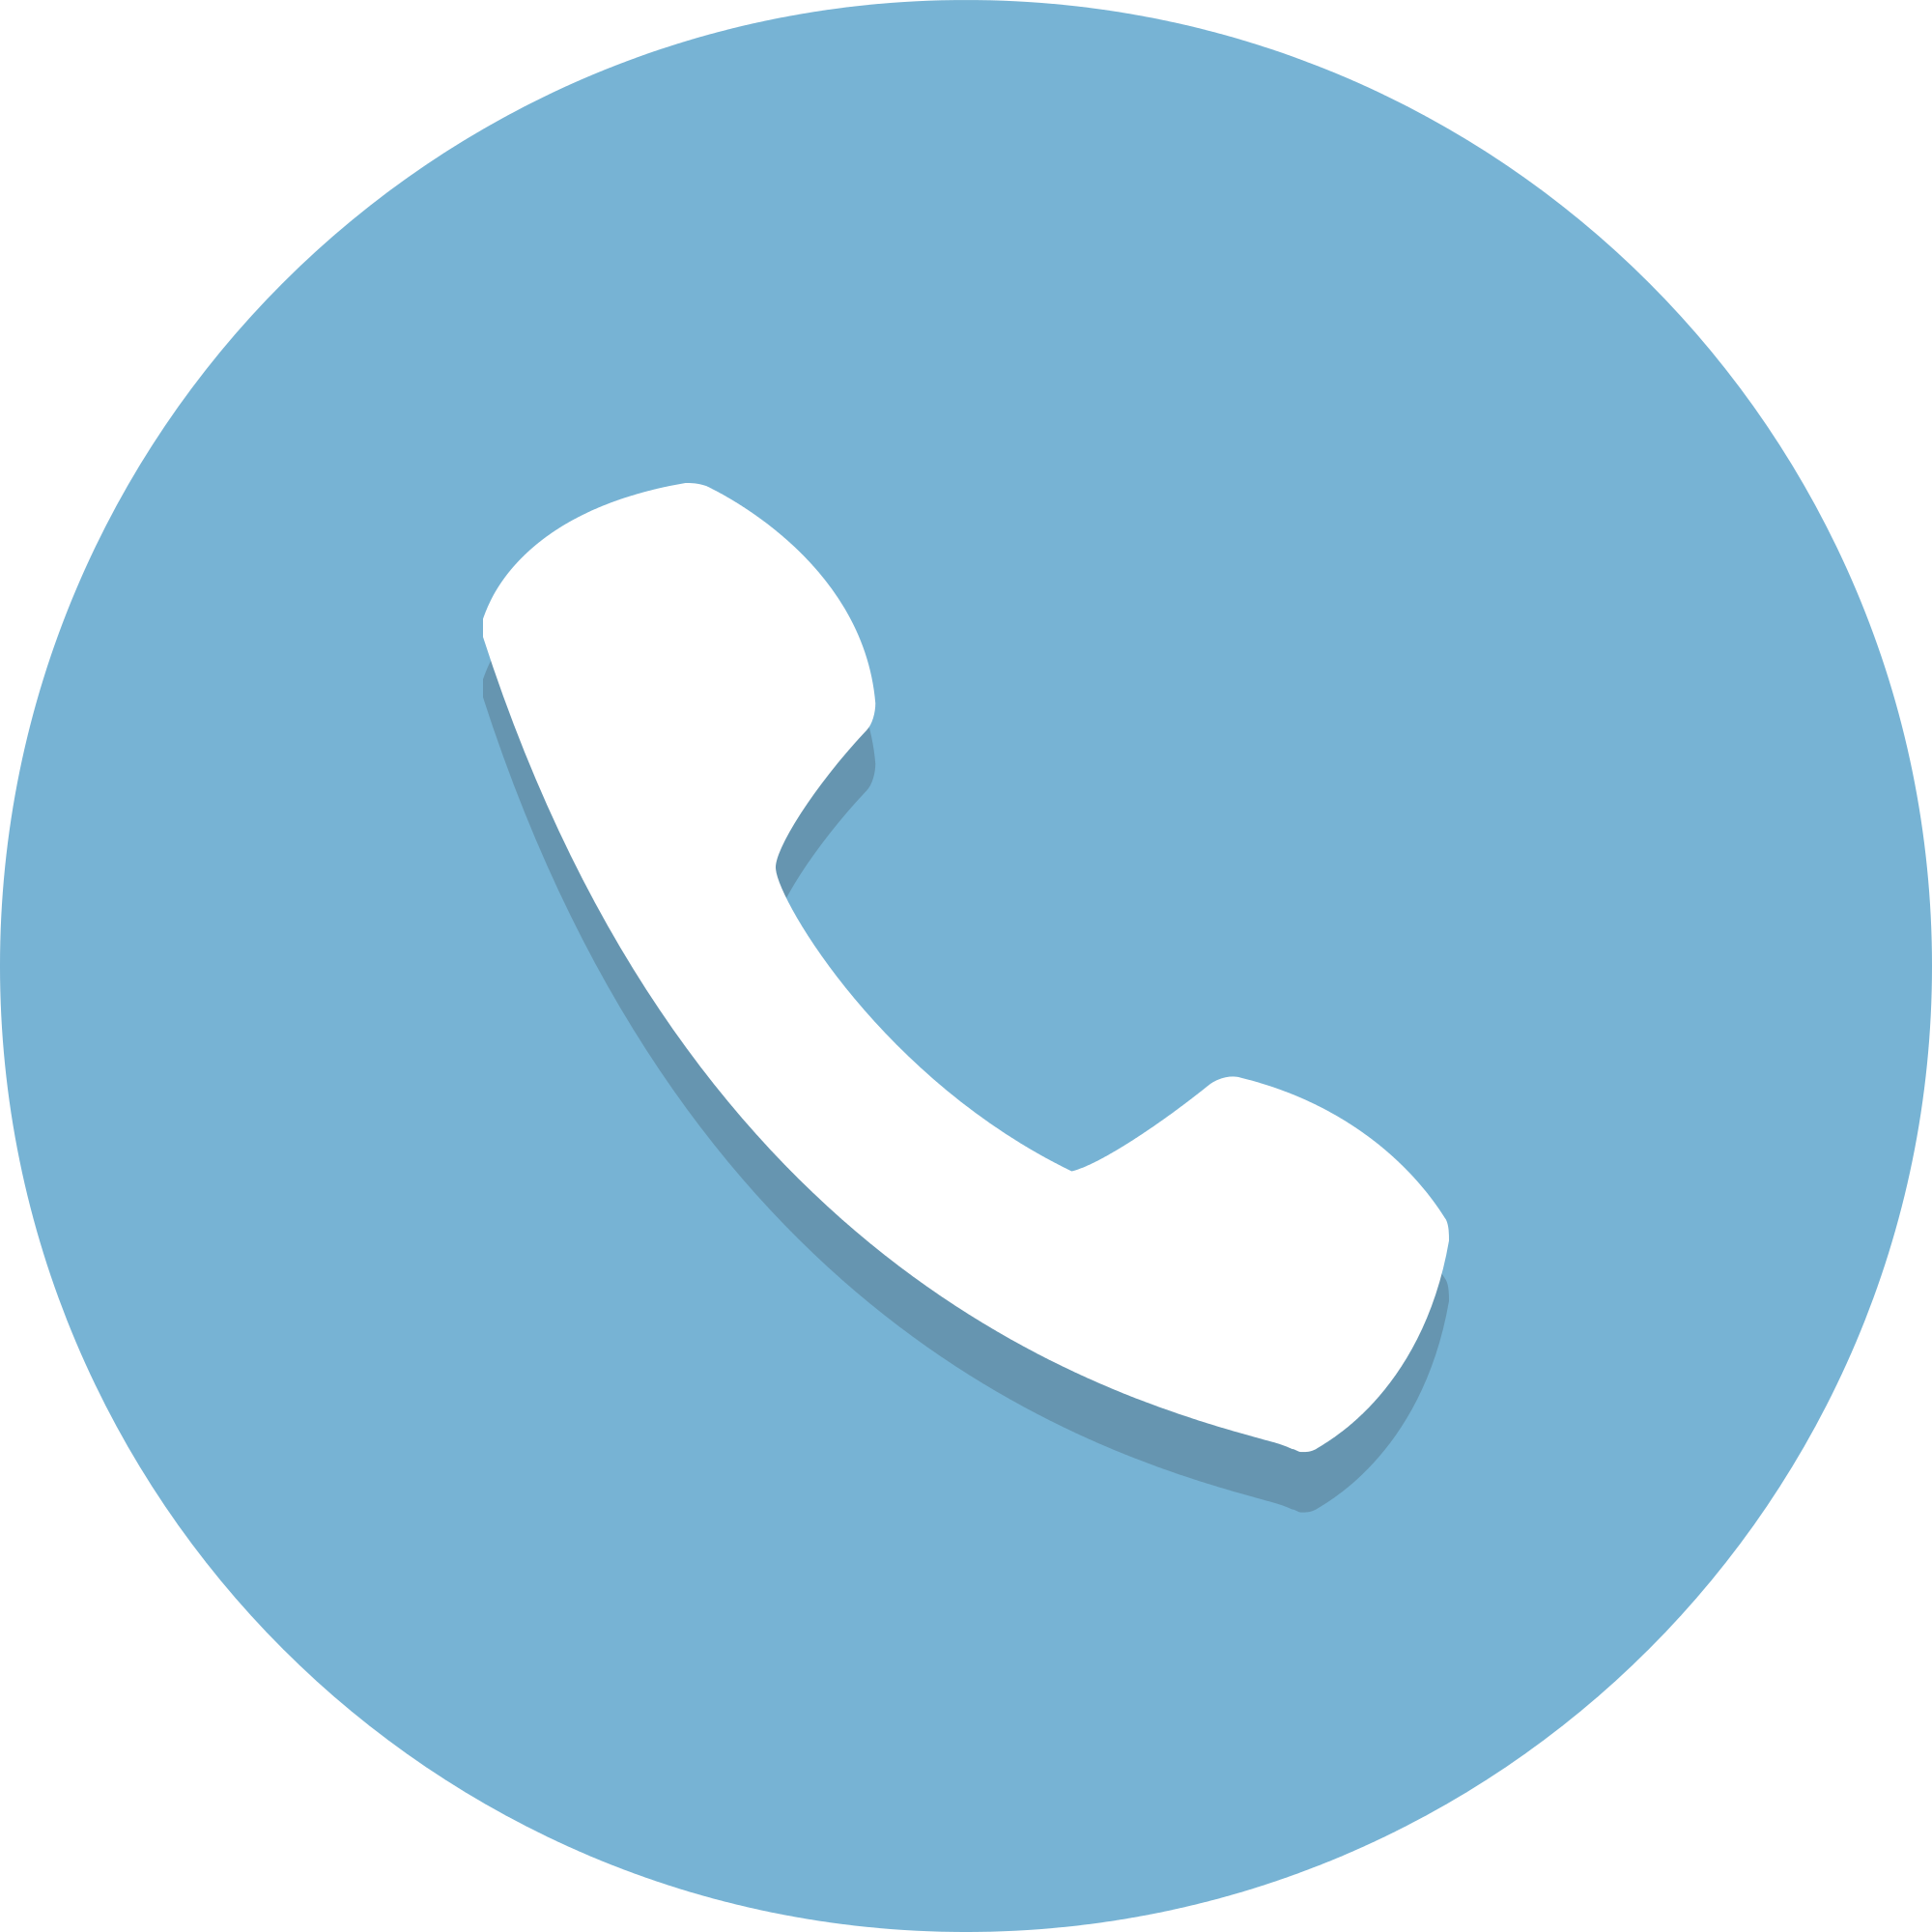 Circle clipart phone Wikimedia icons Open svg Commons